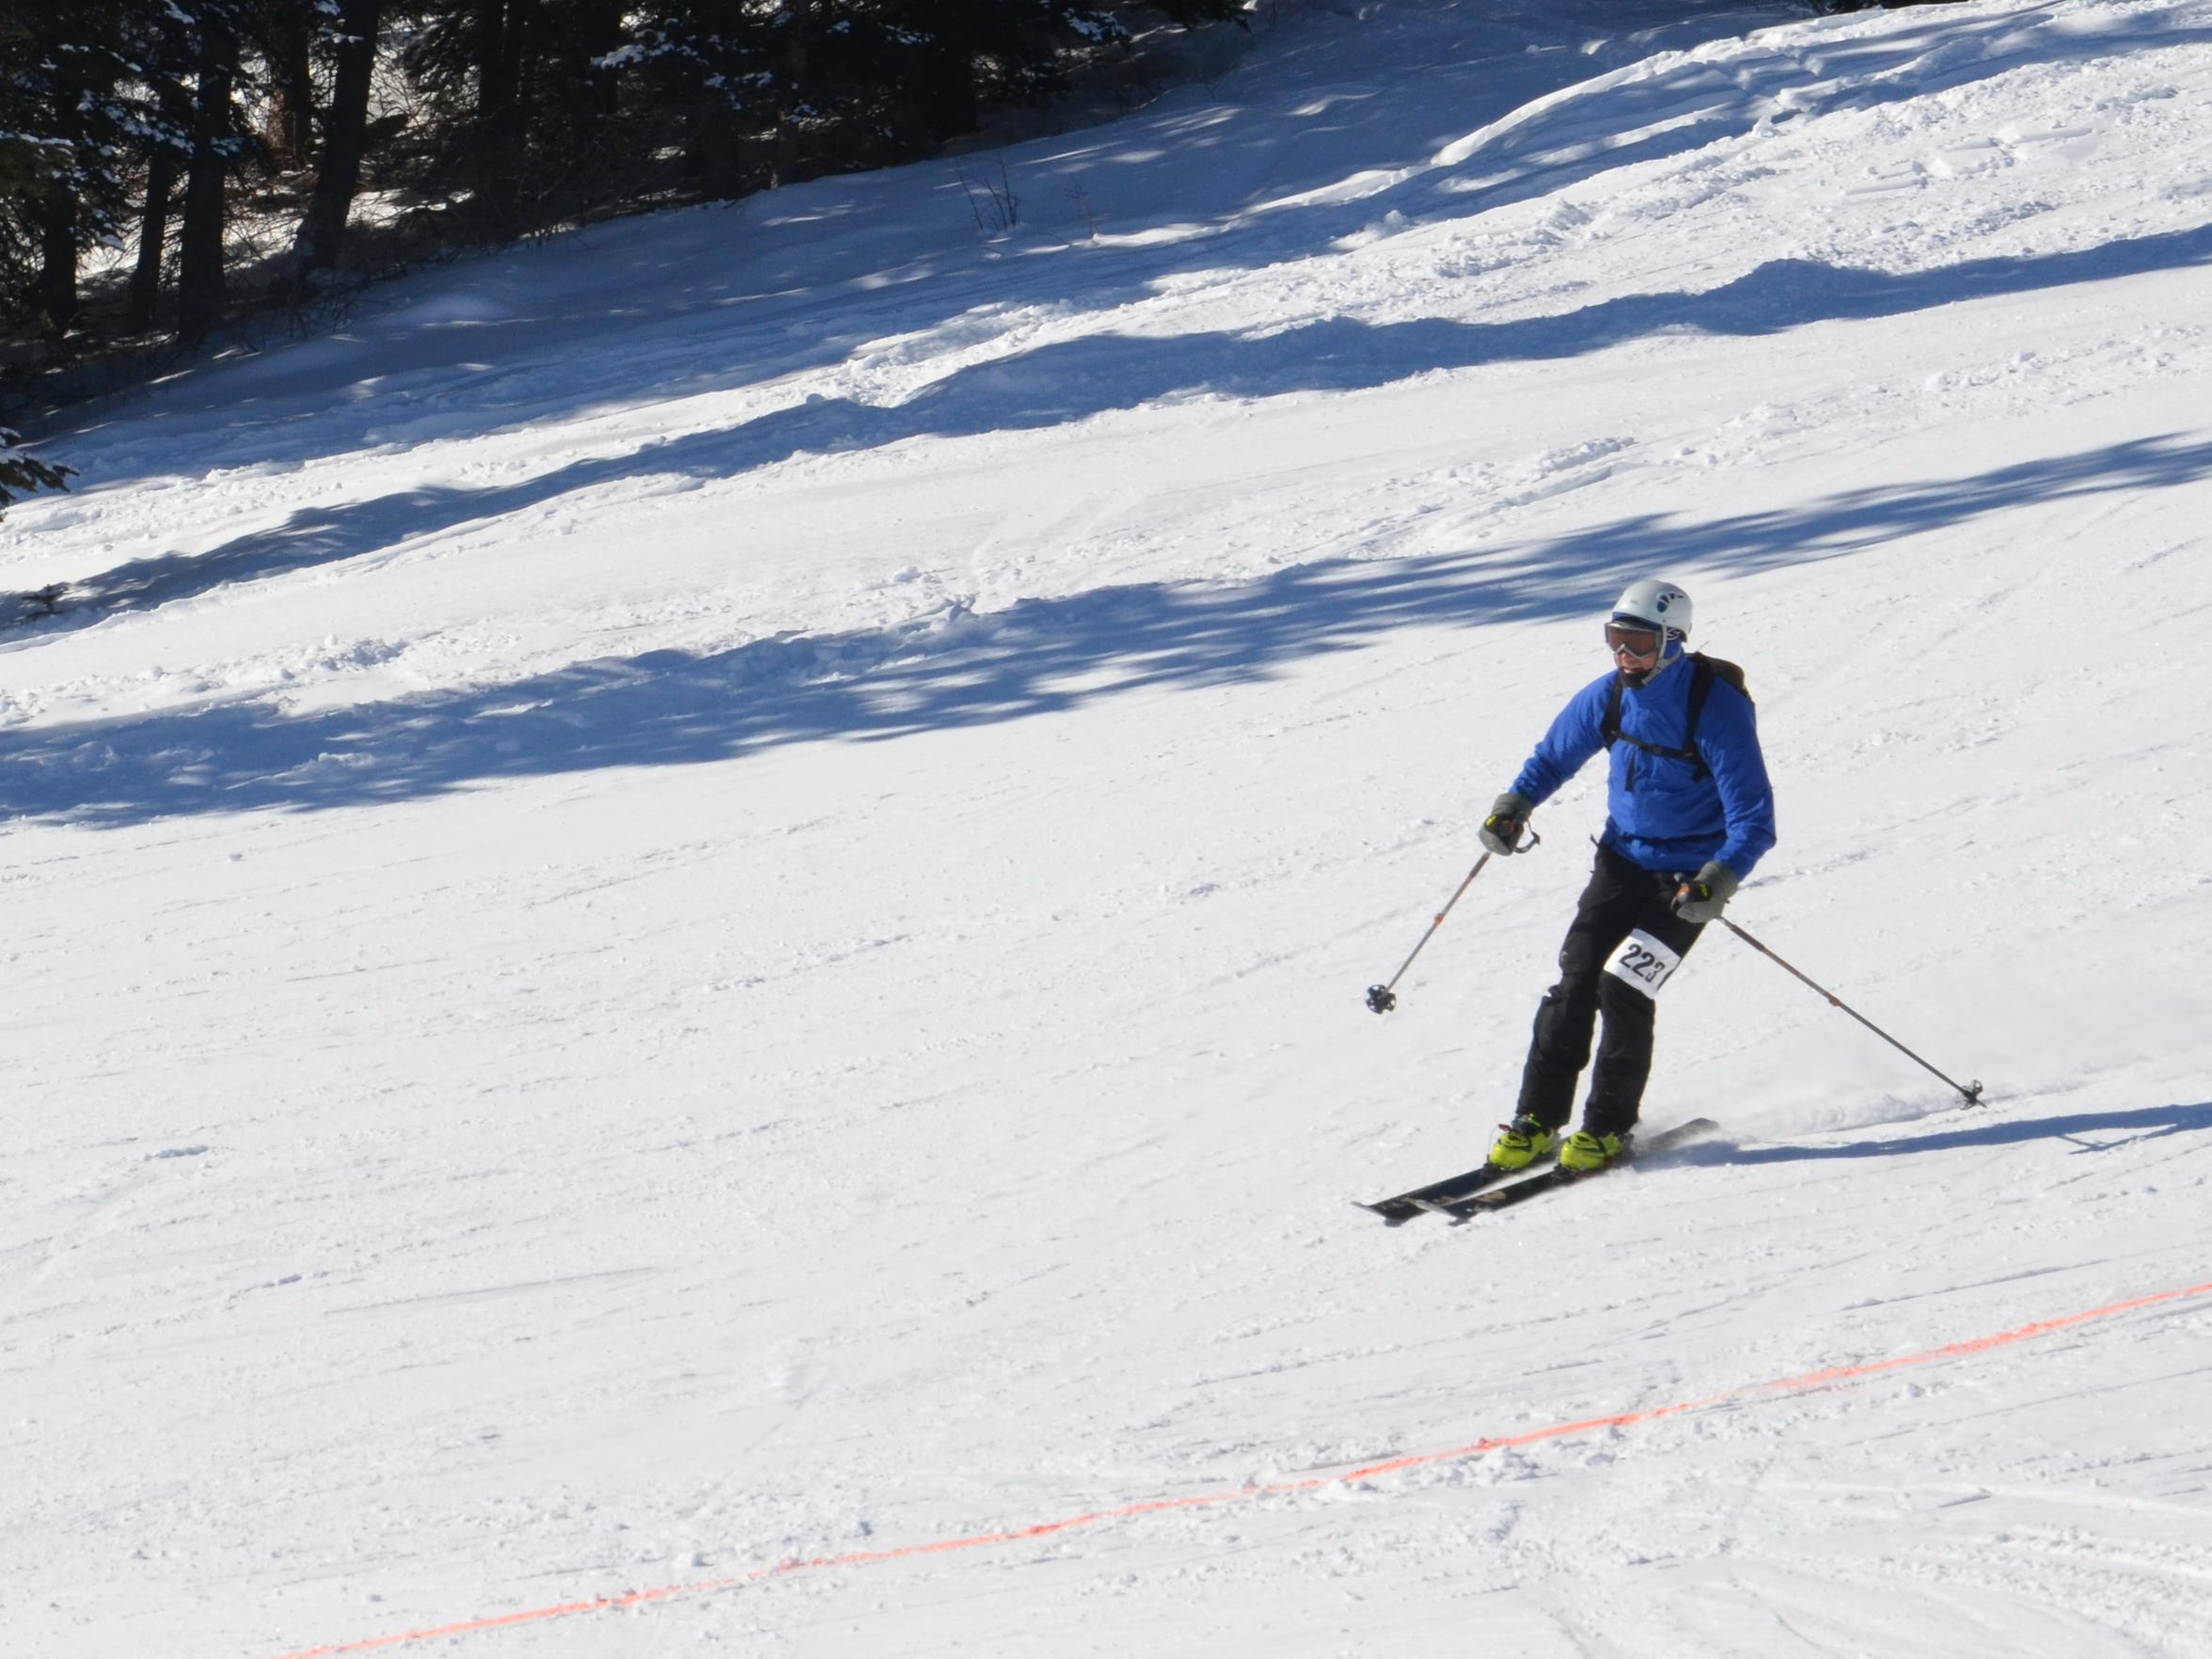 A racer skis down the slopes Saturday at the Jack'n'Jill